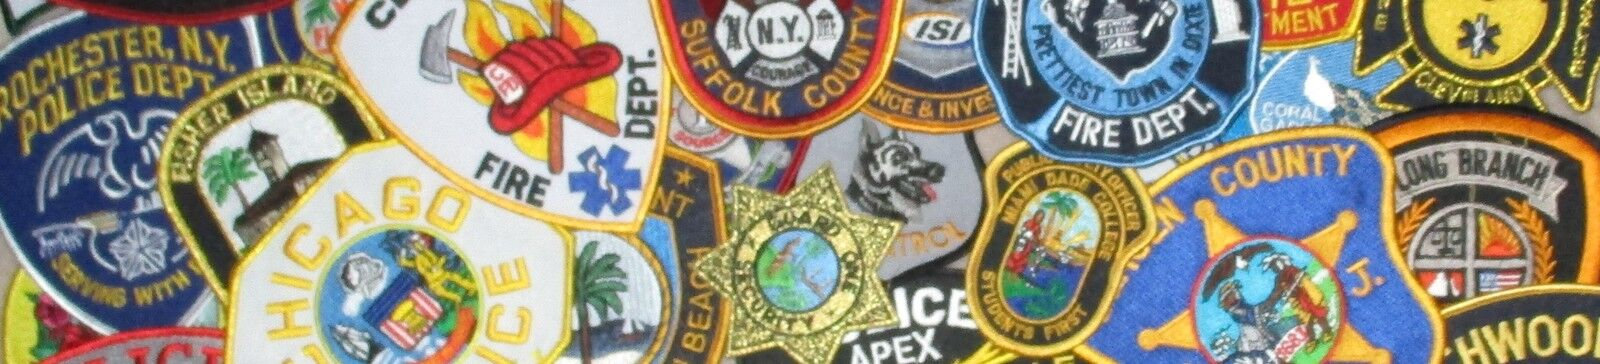 Beaumont Patches Plus